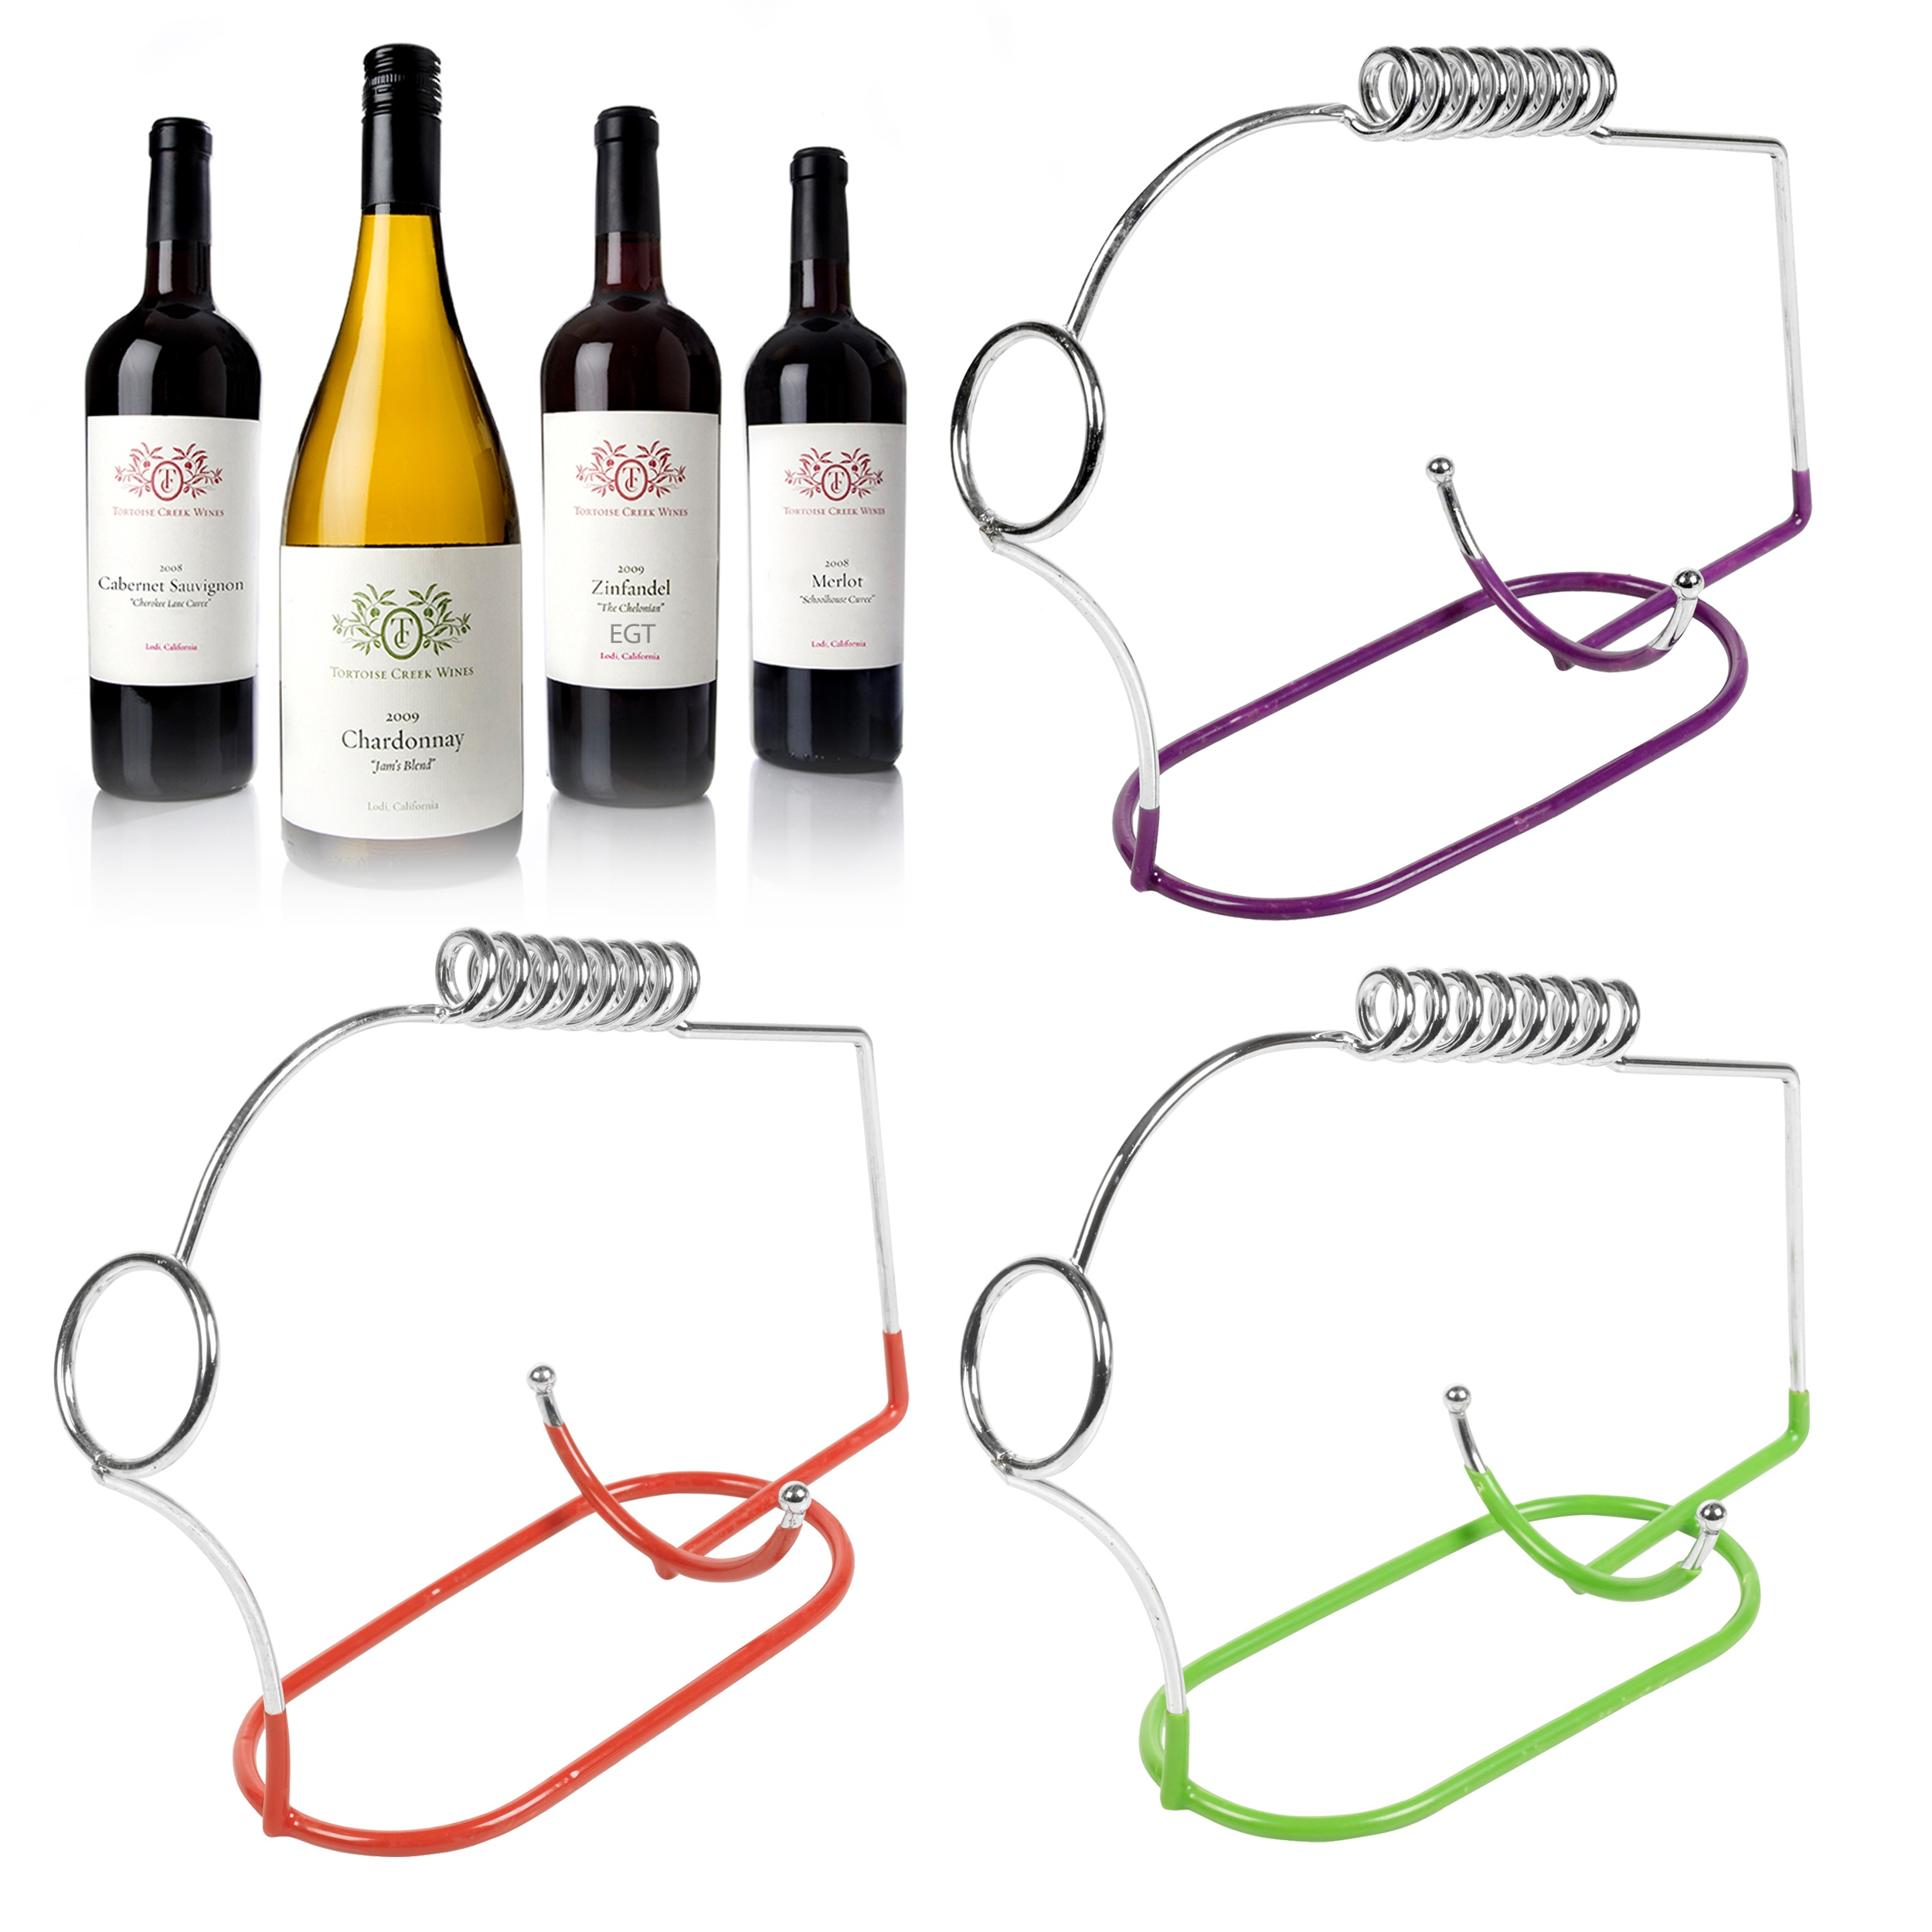 Wire wine bottle holder port rack chrome bar accessory metal champagne novelty ebay - Wire wine bottle carrier ...